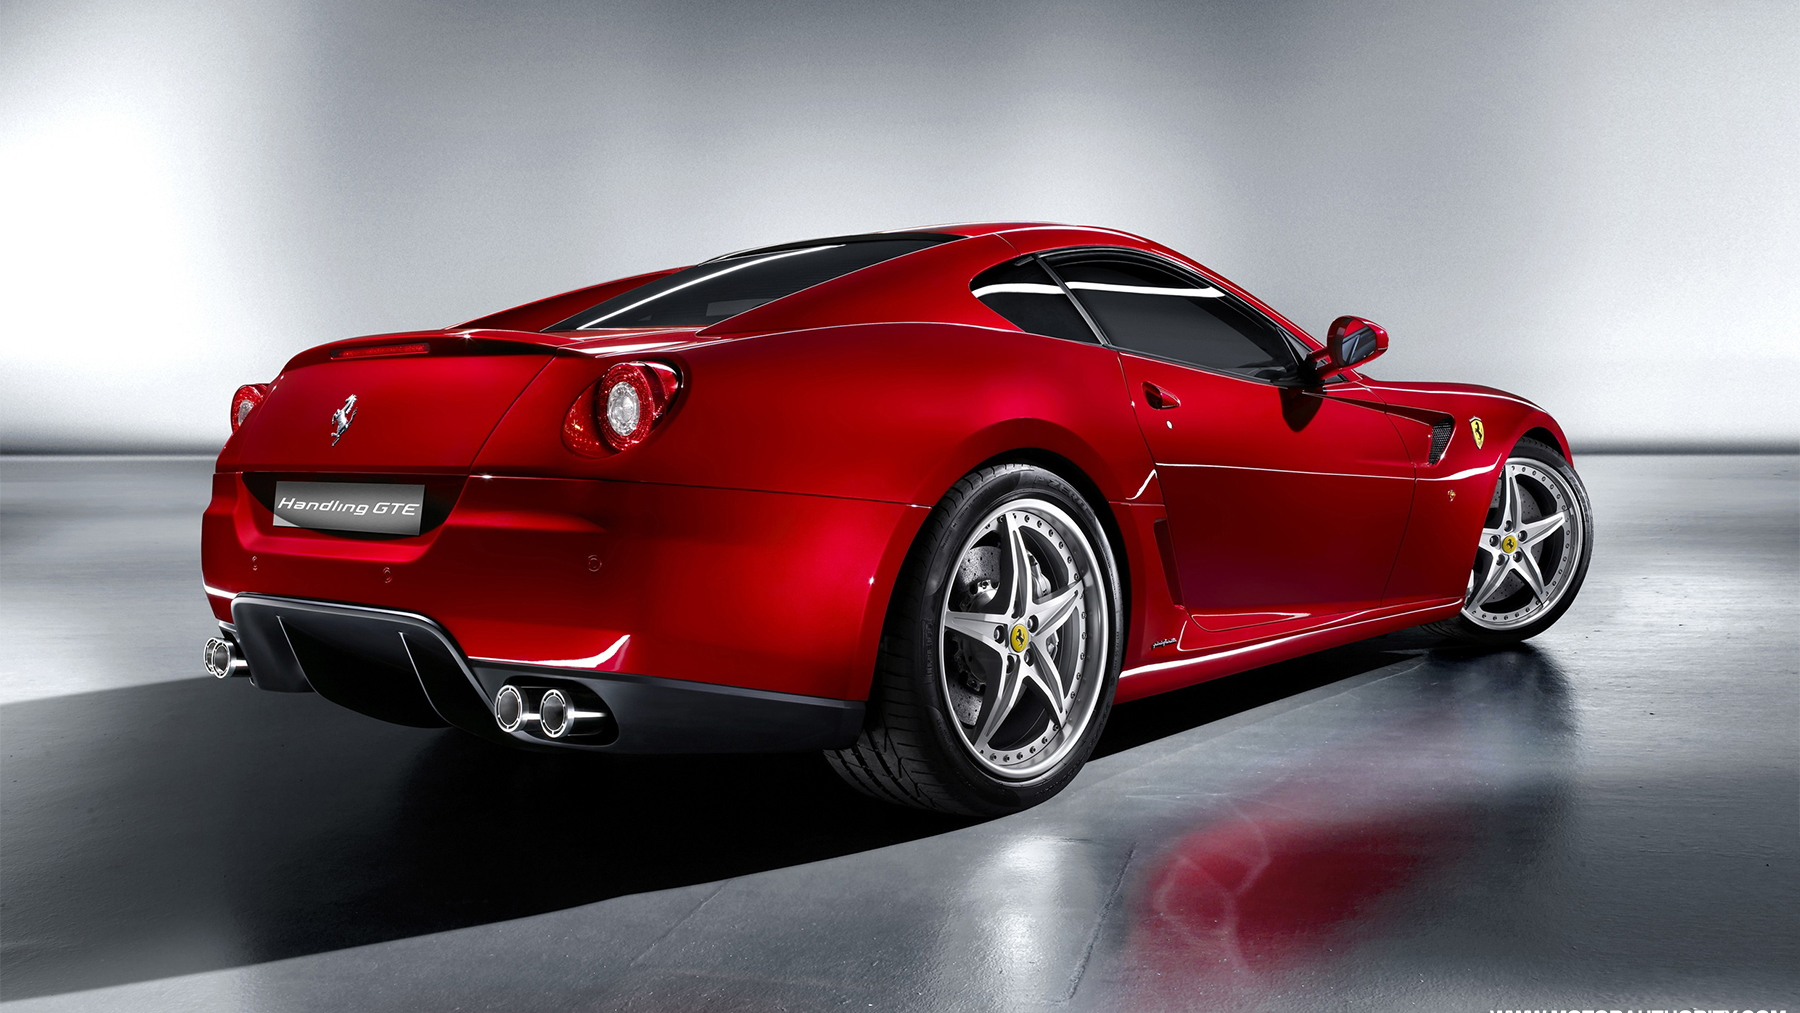 2009 ferrari 599 gtb hgte package 003